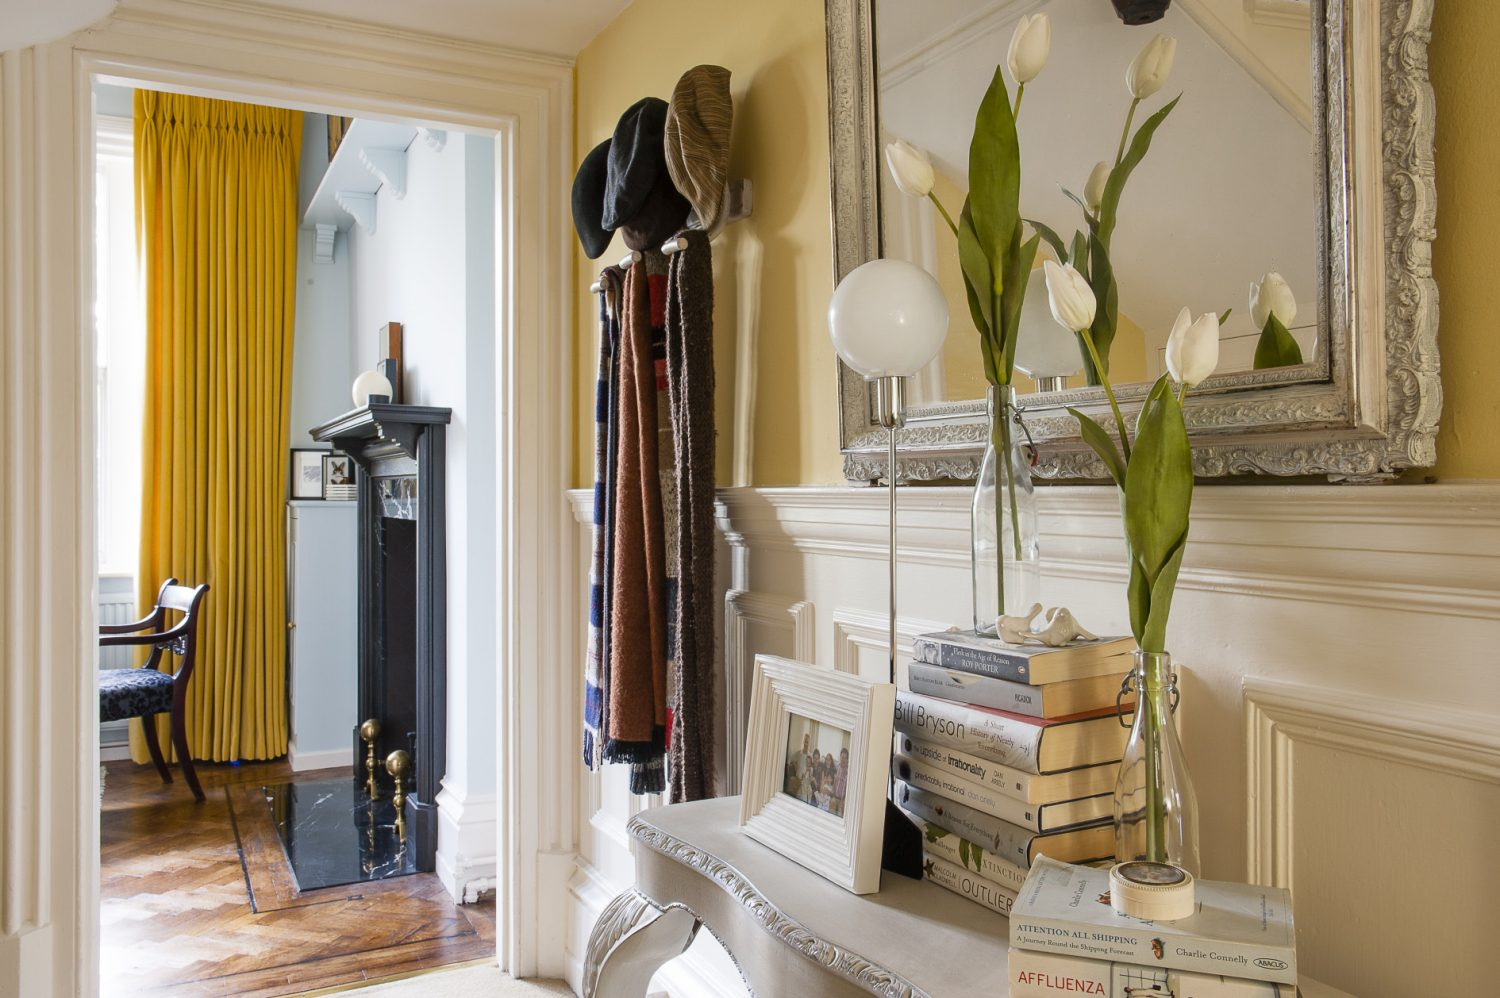 This is a house in which no two rooms are remotely the same. Styles range from contemporary cool through Victorian, Arts and Crafts and Empire and yet Dan has handled each with deft confidence